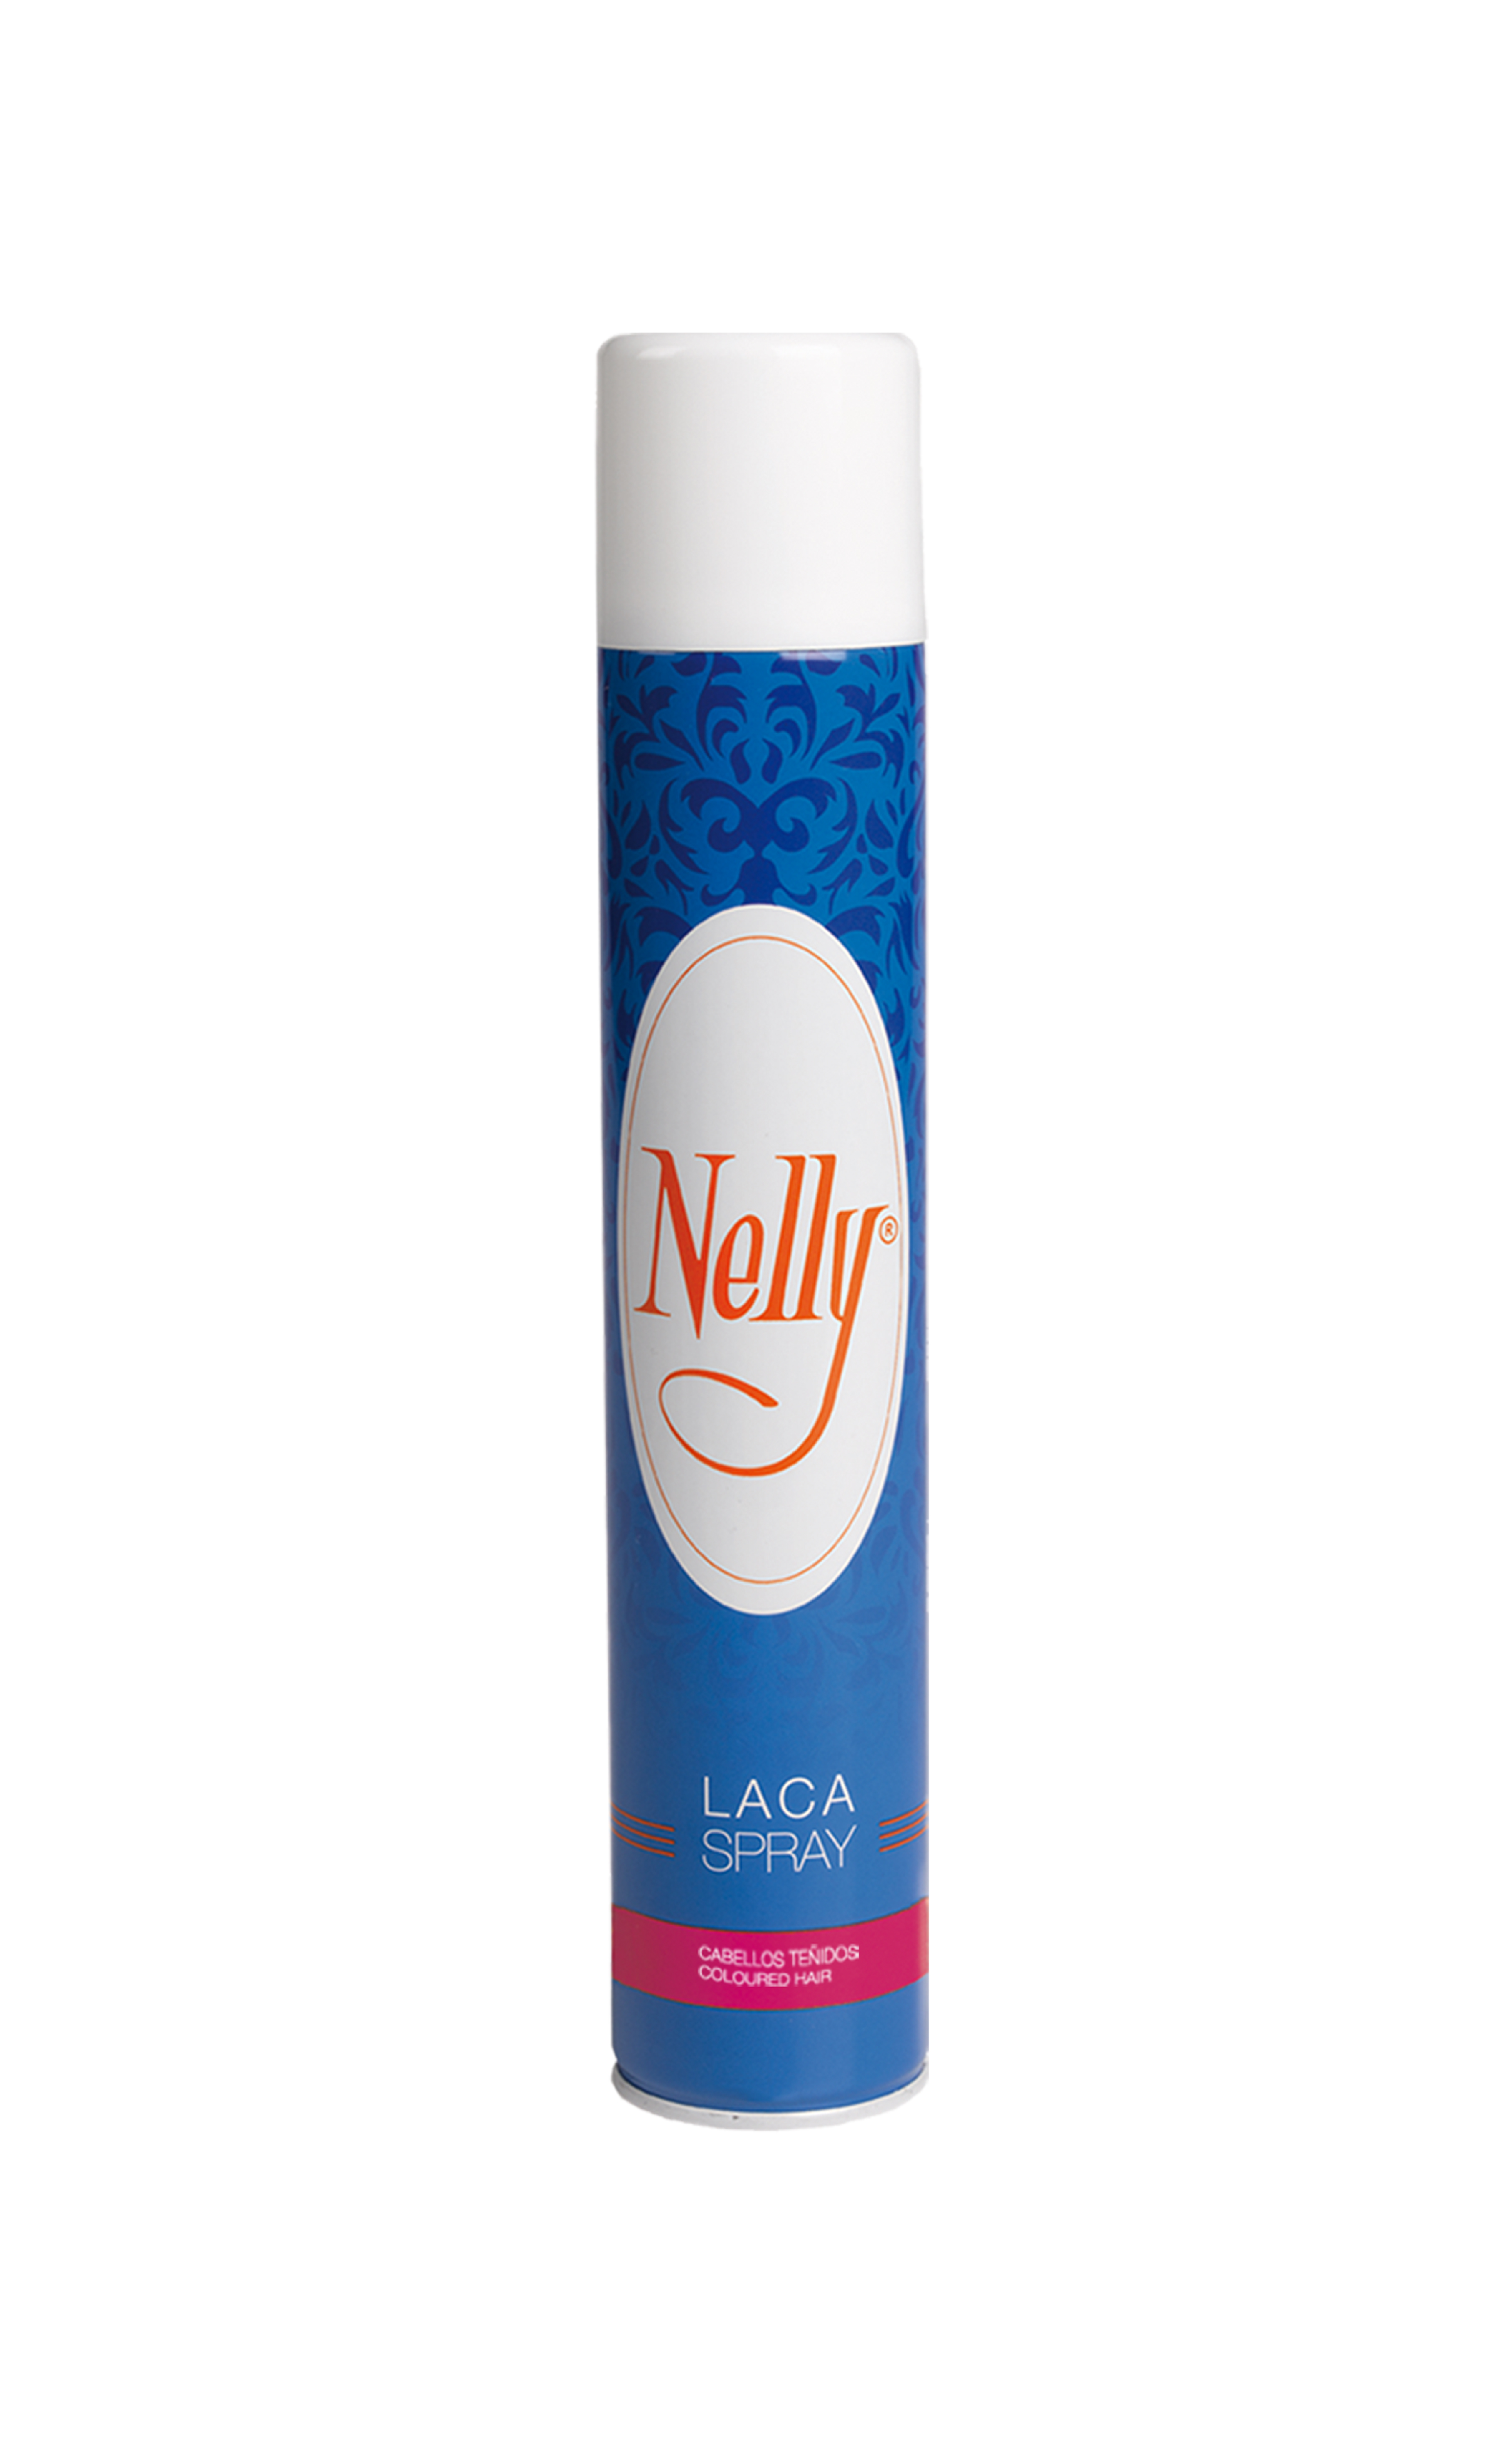 NELLY LACA CABELLOS TEÑIDOS SPRAY 400ML